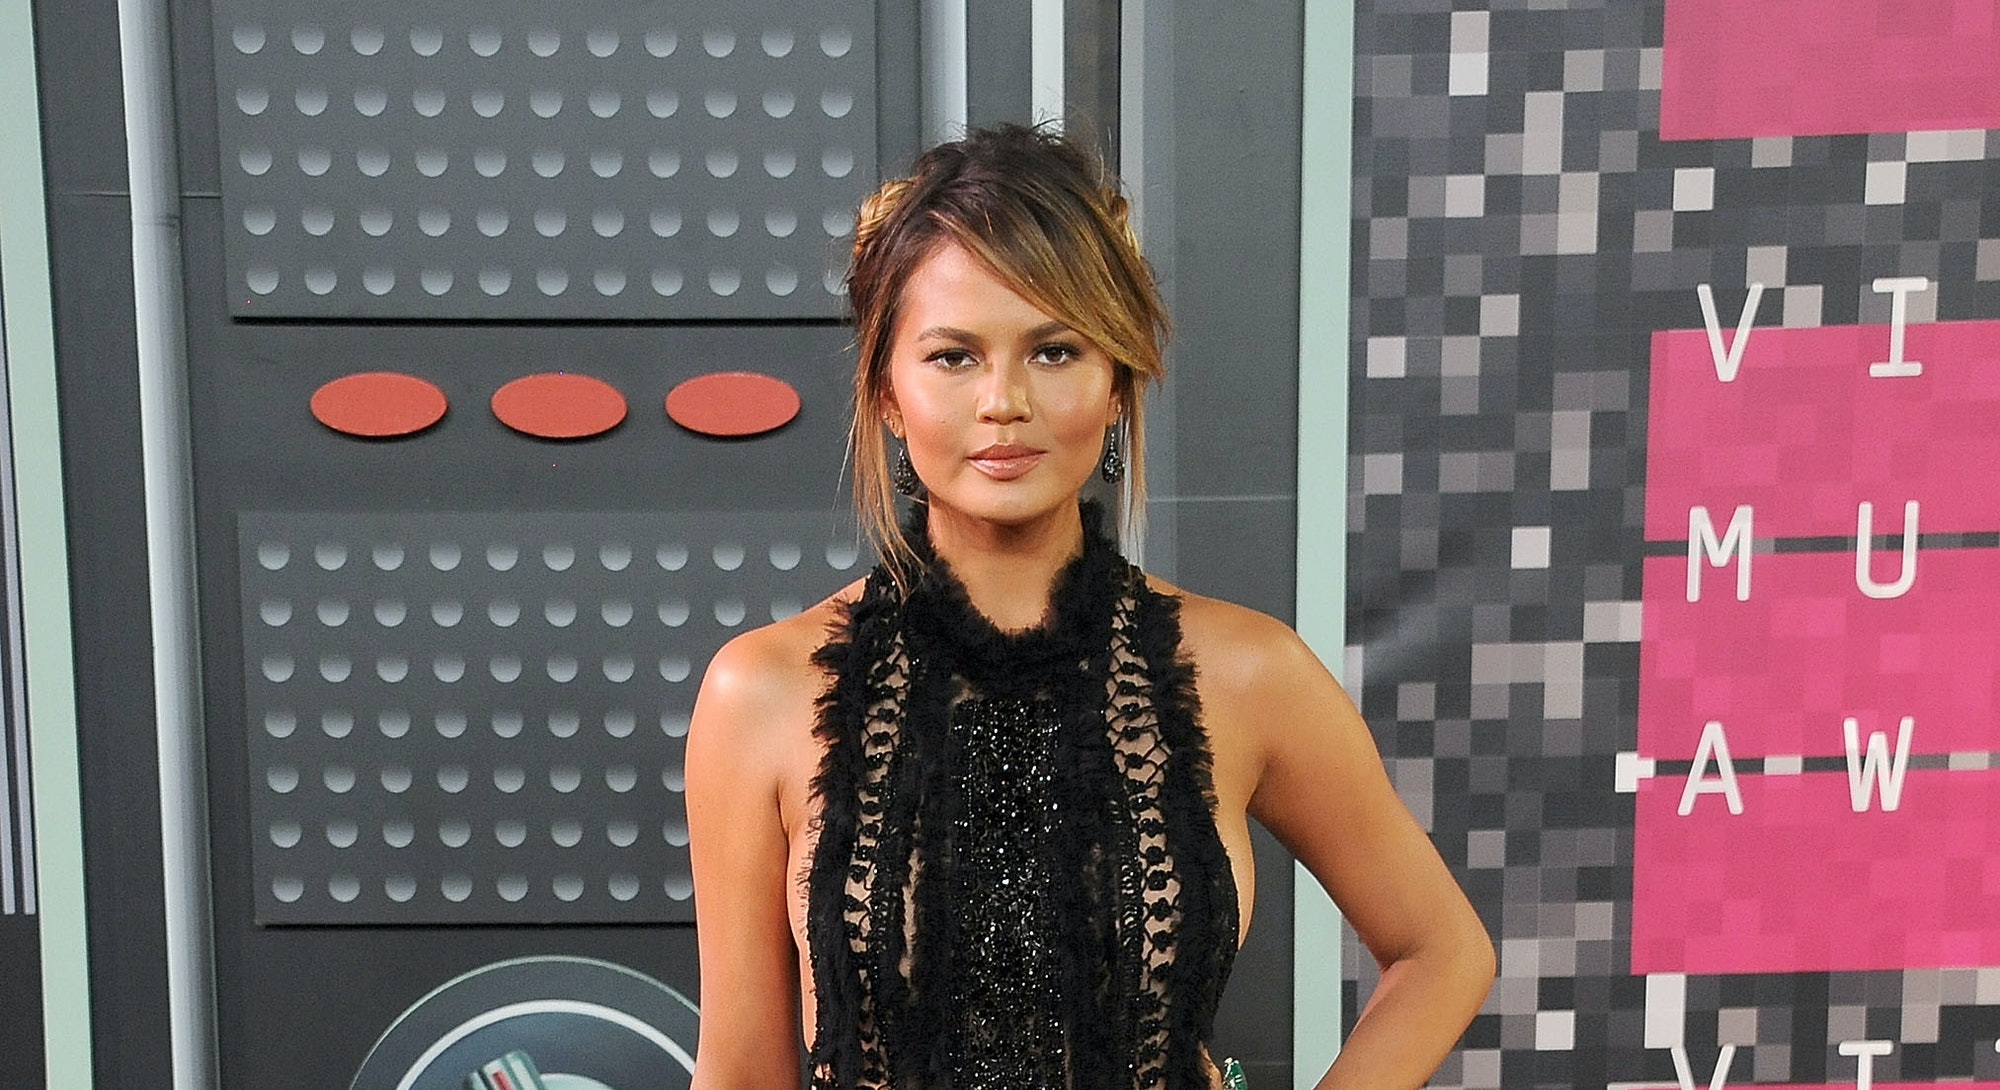 LOS ANGELES, CA - AUGUST 30:  Model Chrissy Teigen arrives at the 2015 MTV Video Music Awards at Microsoft Theater on August 30, 2015 in Los Angeles, California.  (Photo by Gregg DeGuire/WireImage)